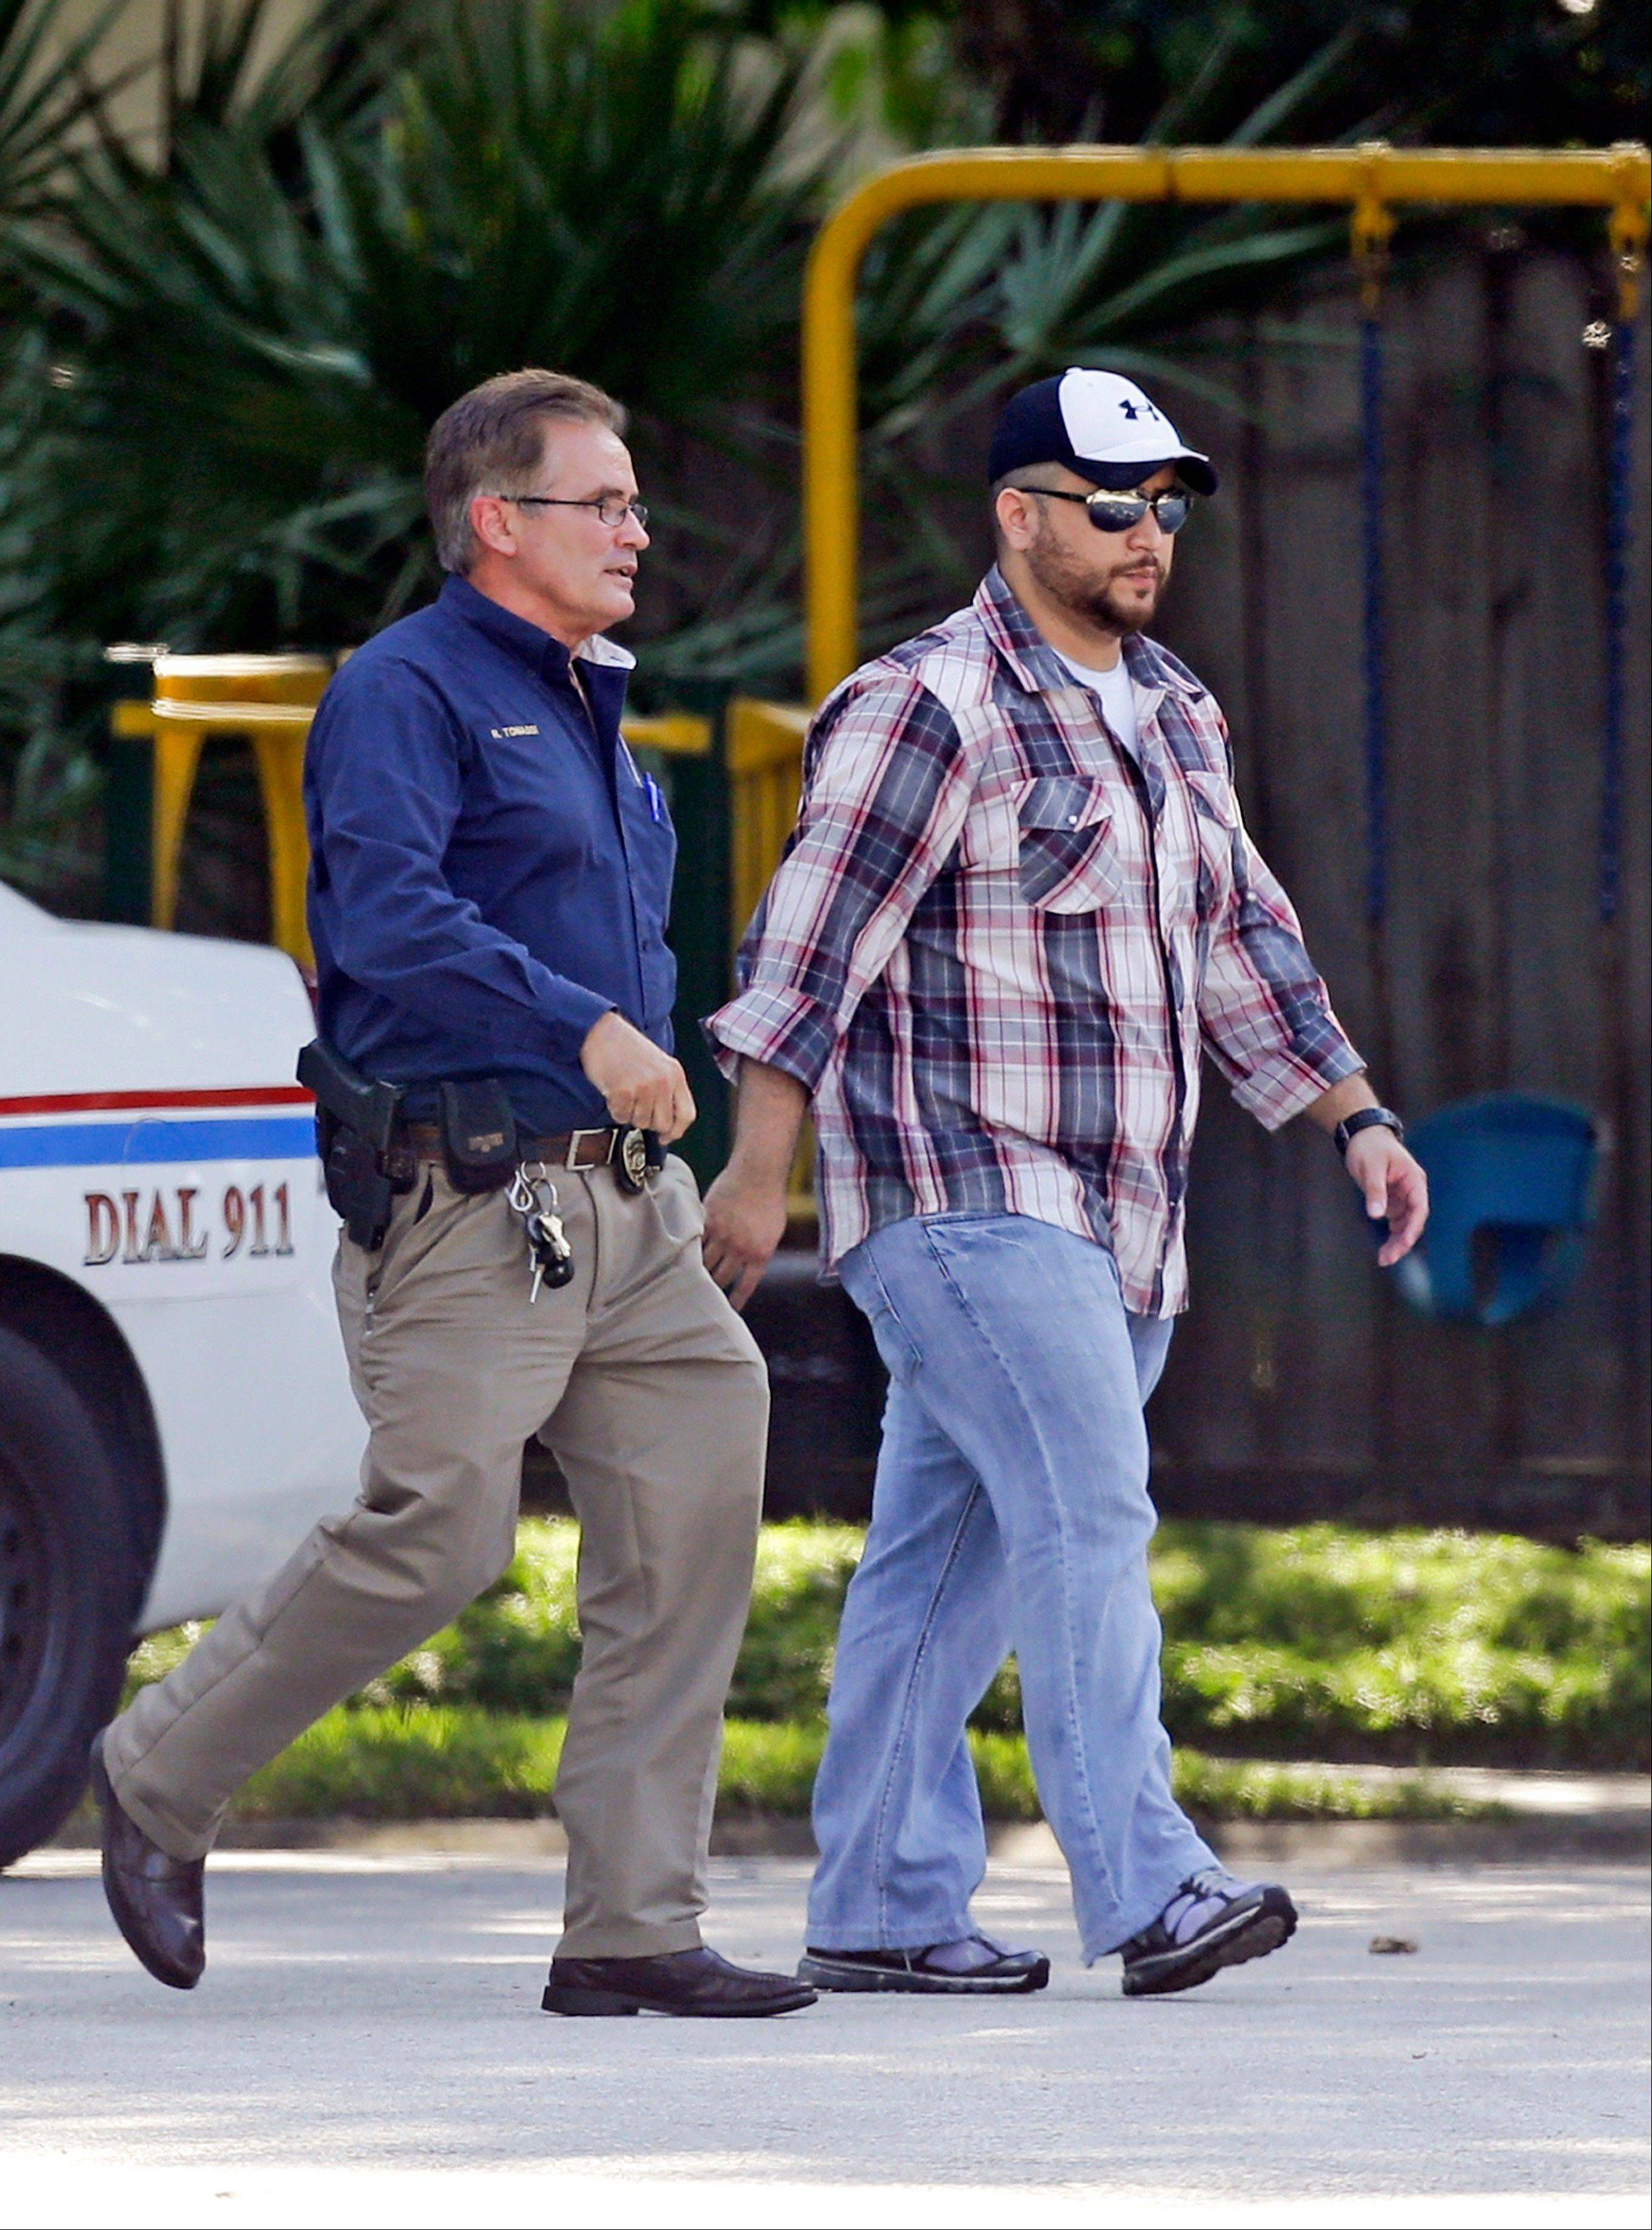 George Zimmerman, right, is escorted to a home by a police officer Monday in Lake Mary, Fla., after a domestic incident in the neighborhood where Zimmerman and his wife Shellie had lived during his murder trial.